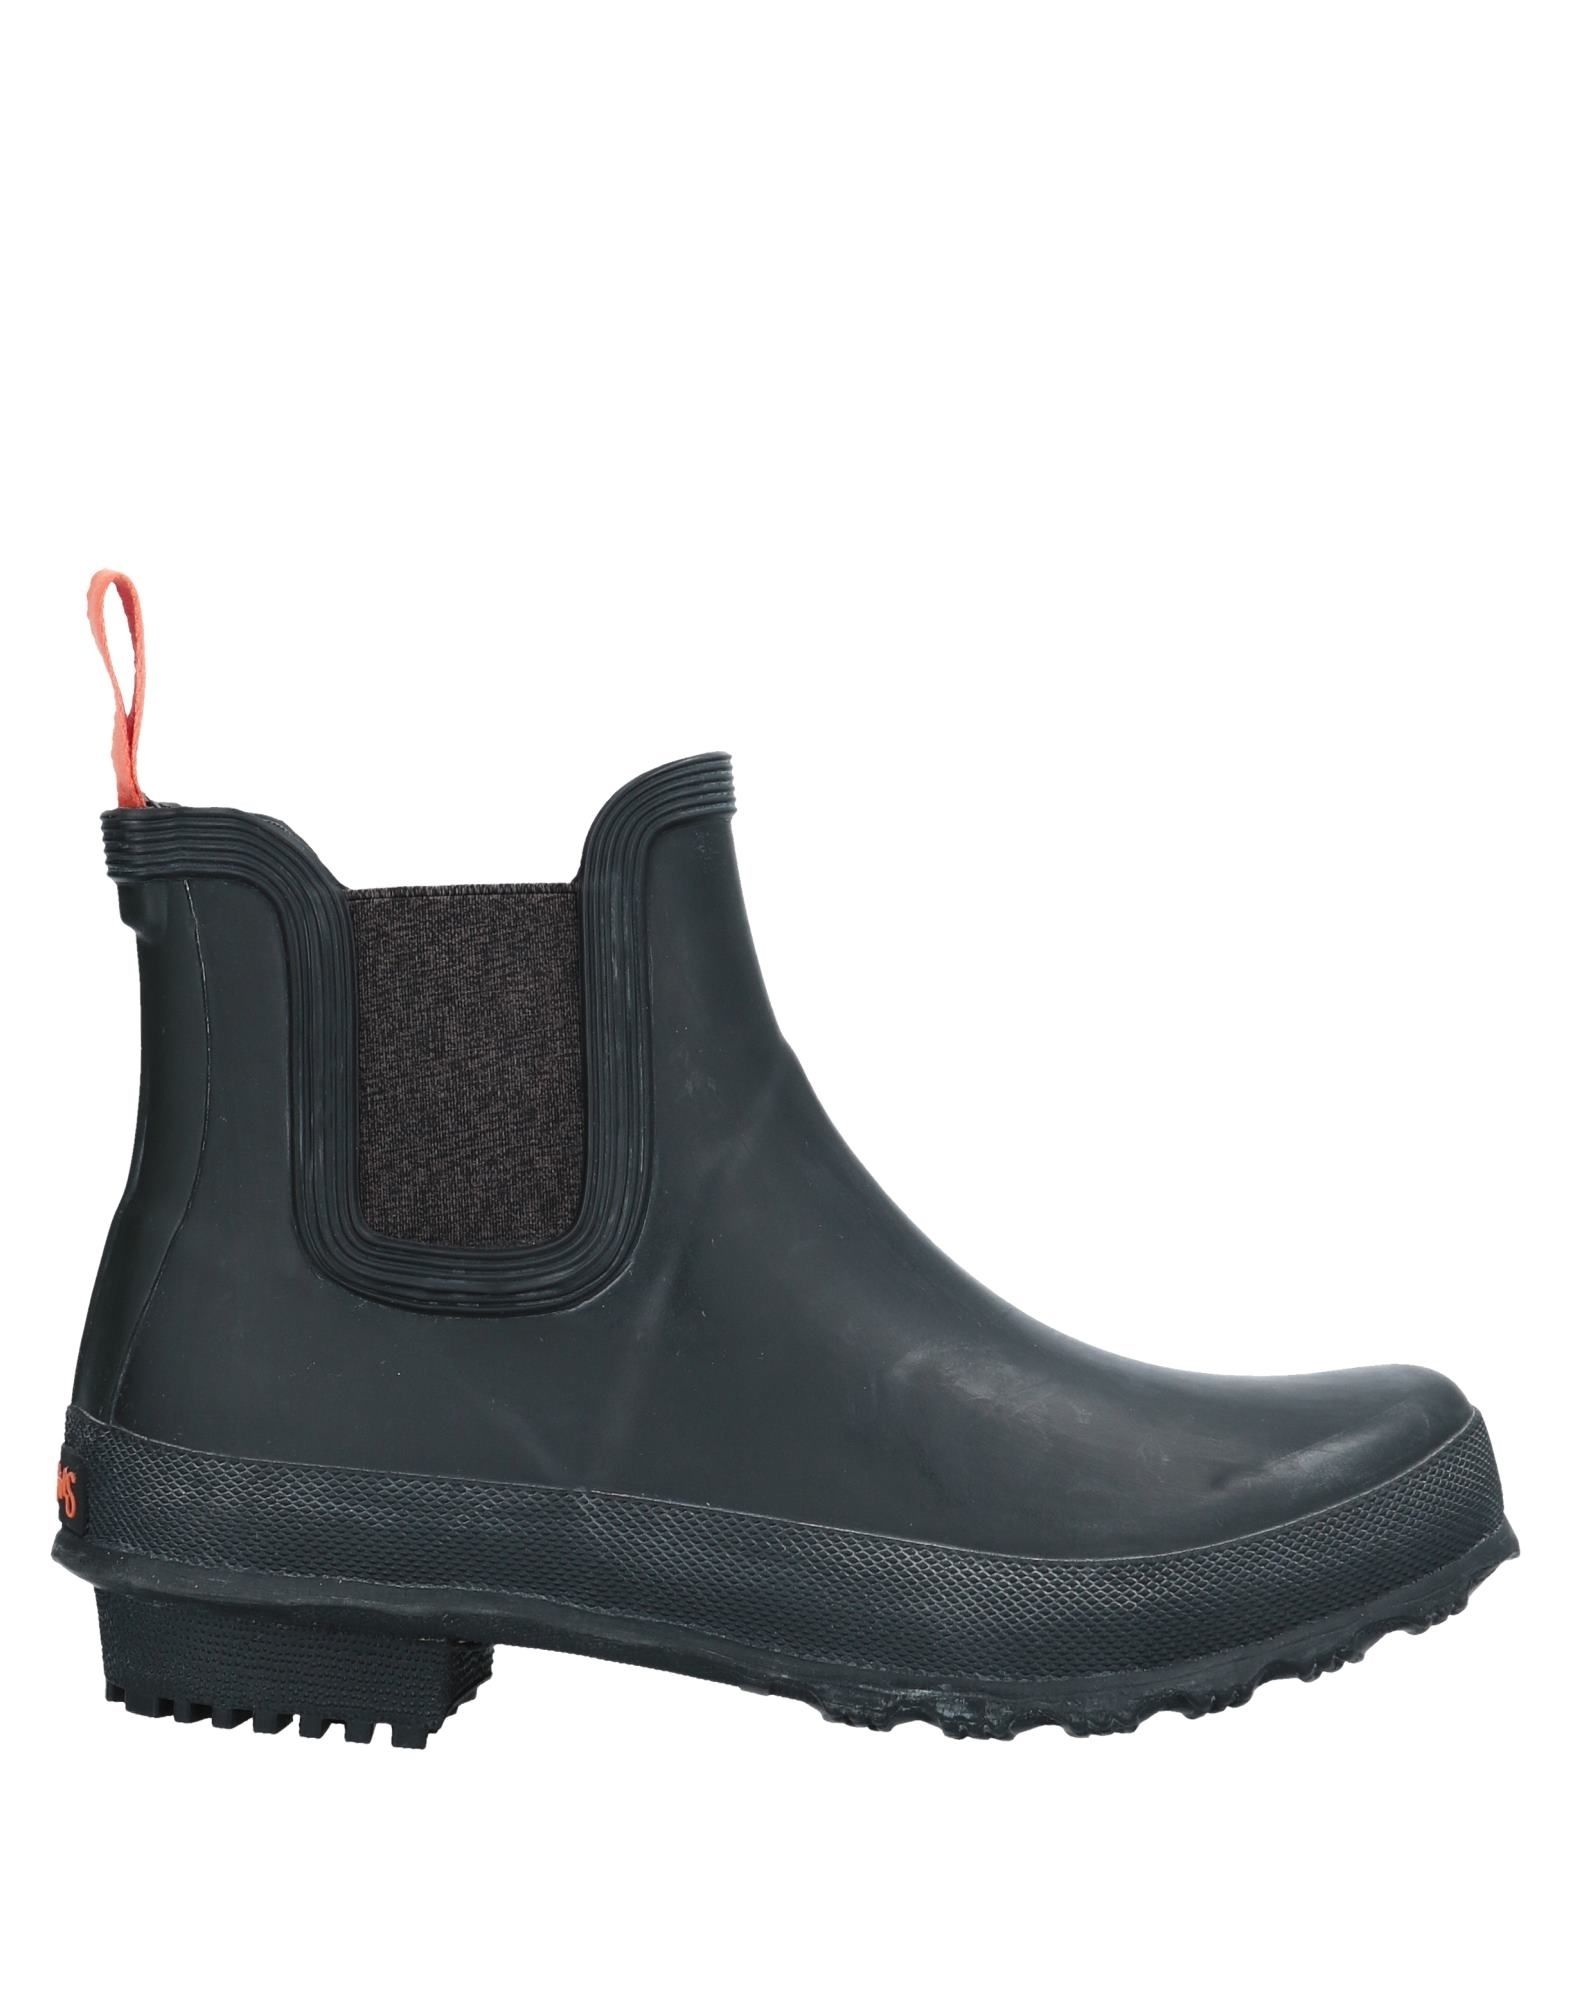 Swims Boots Boots Boots - Men Swims Boots online on  Australia - 11547076US e900bf